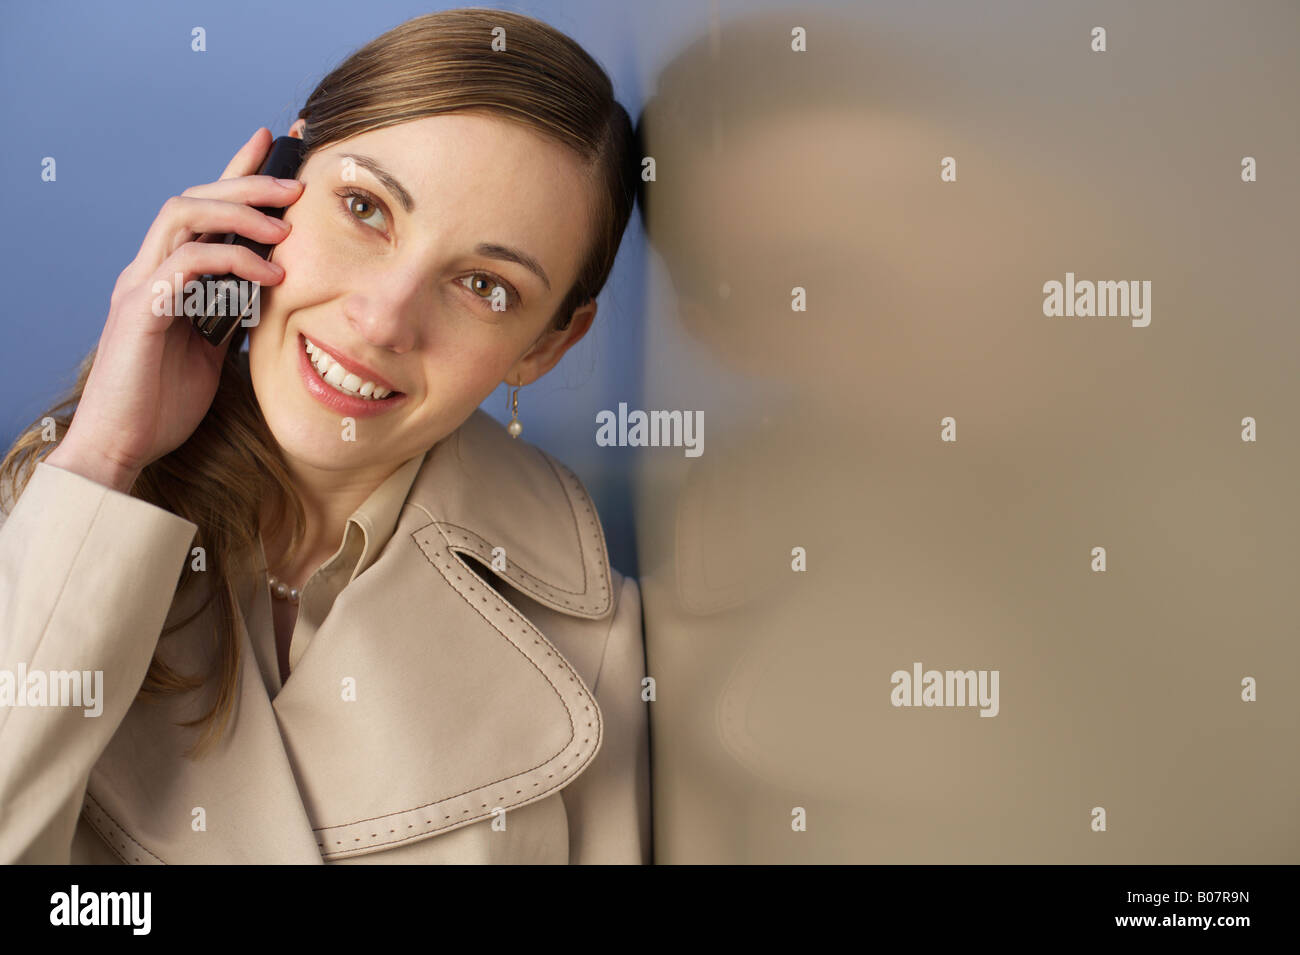 Businesswoman phoning with a mobile phone - Stock Image